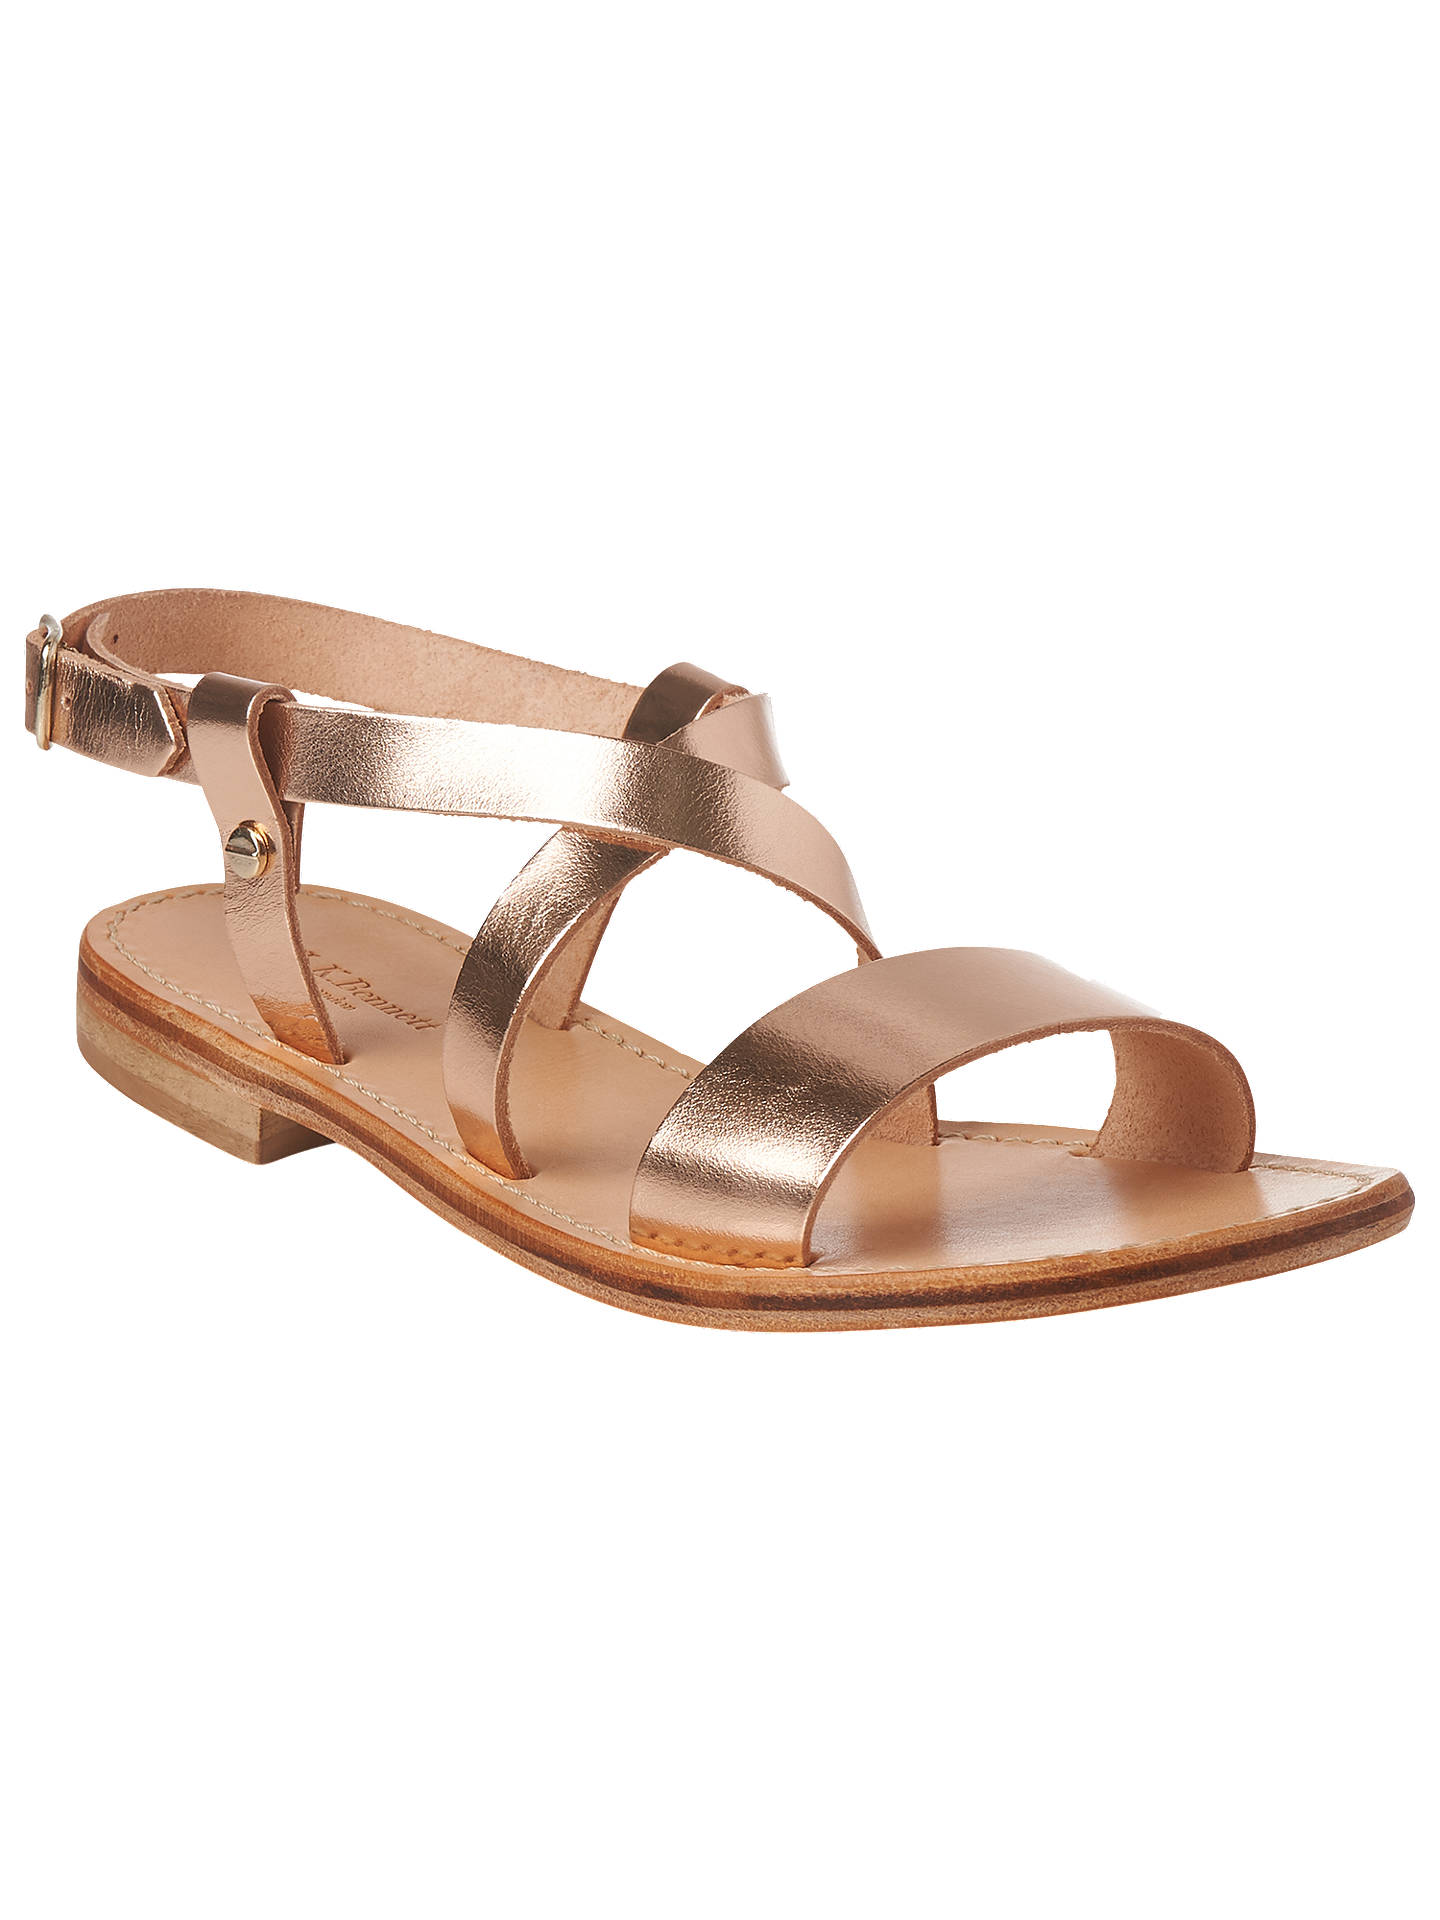 BuyL.K.Bennett Hemera Flat Sandals, Rose Gold Leather, 9 Online at johnlewis.com